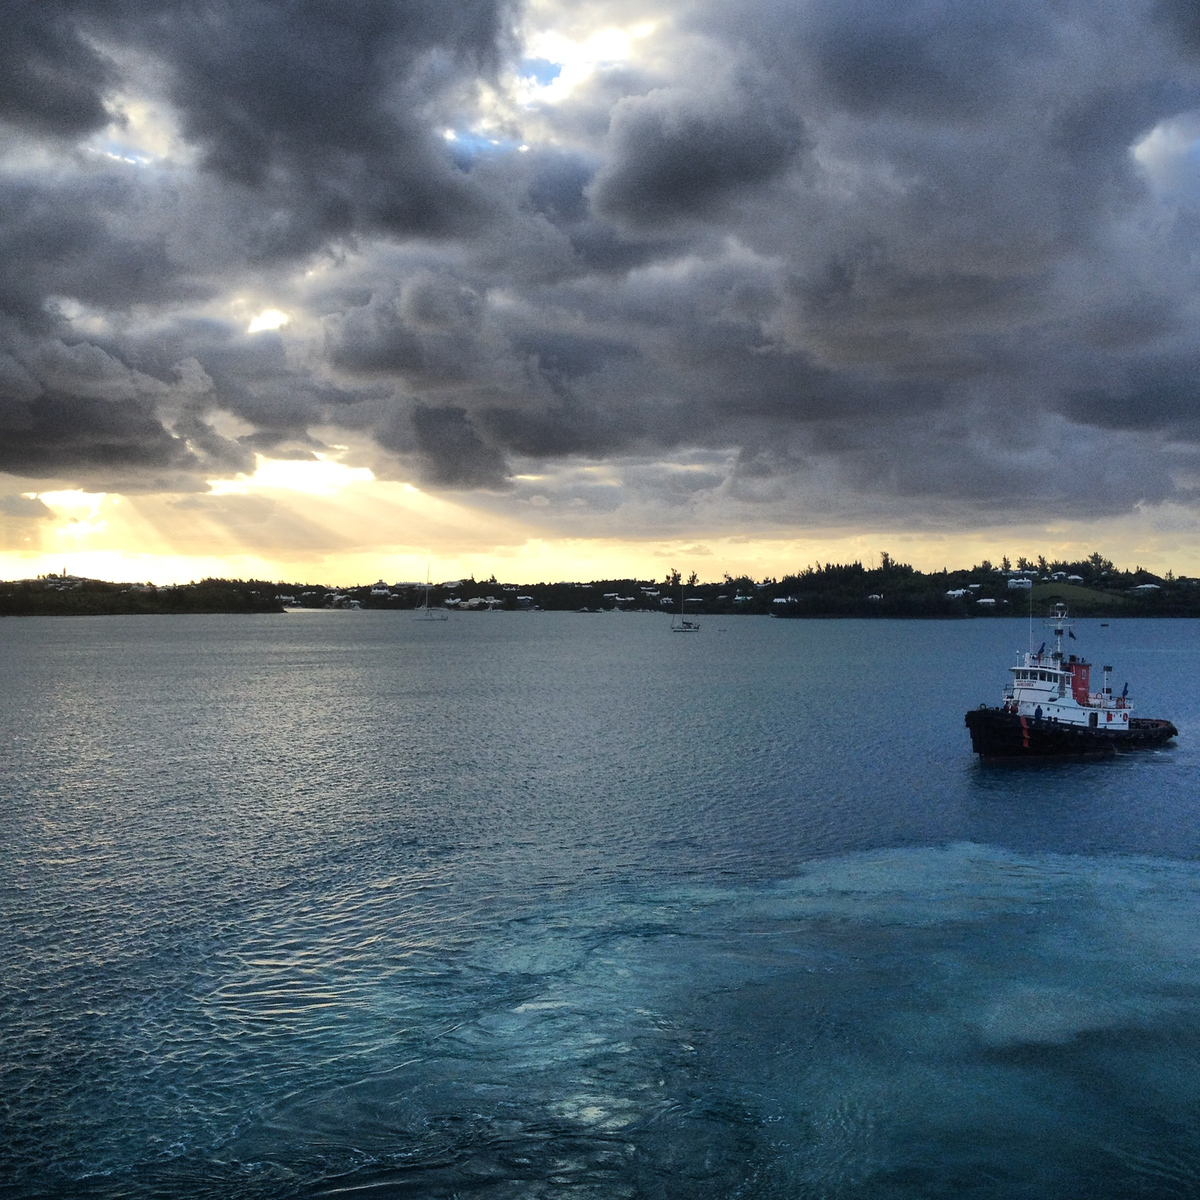 Bermuda is part of the itinerary on a spring cruise with Silver Wind.